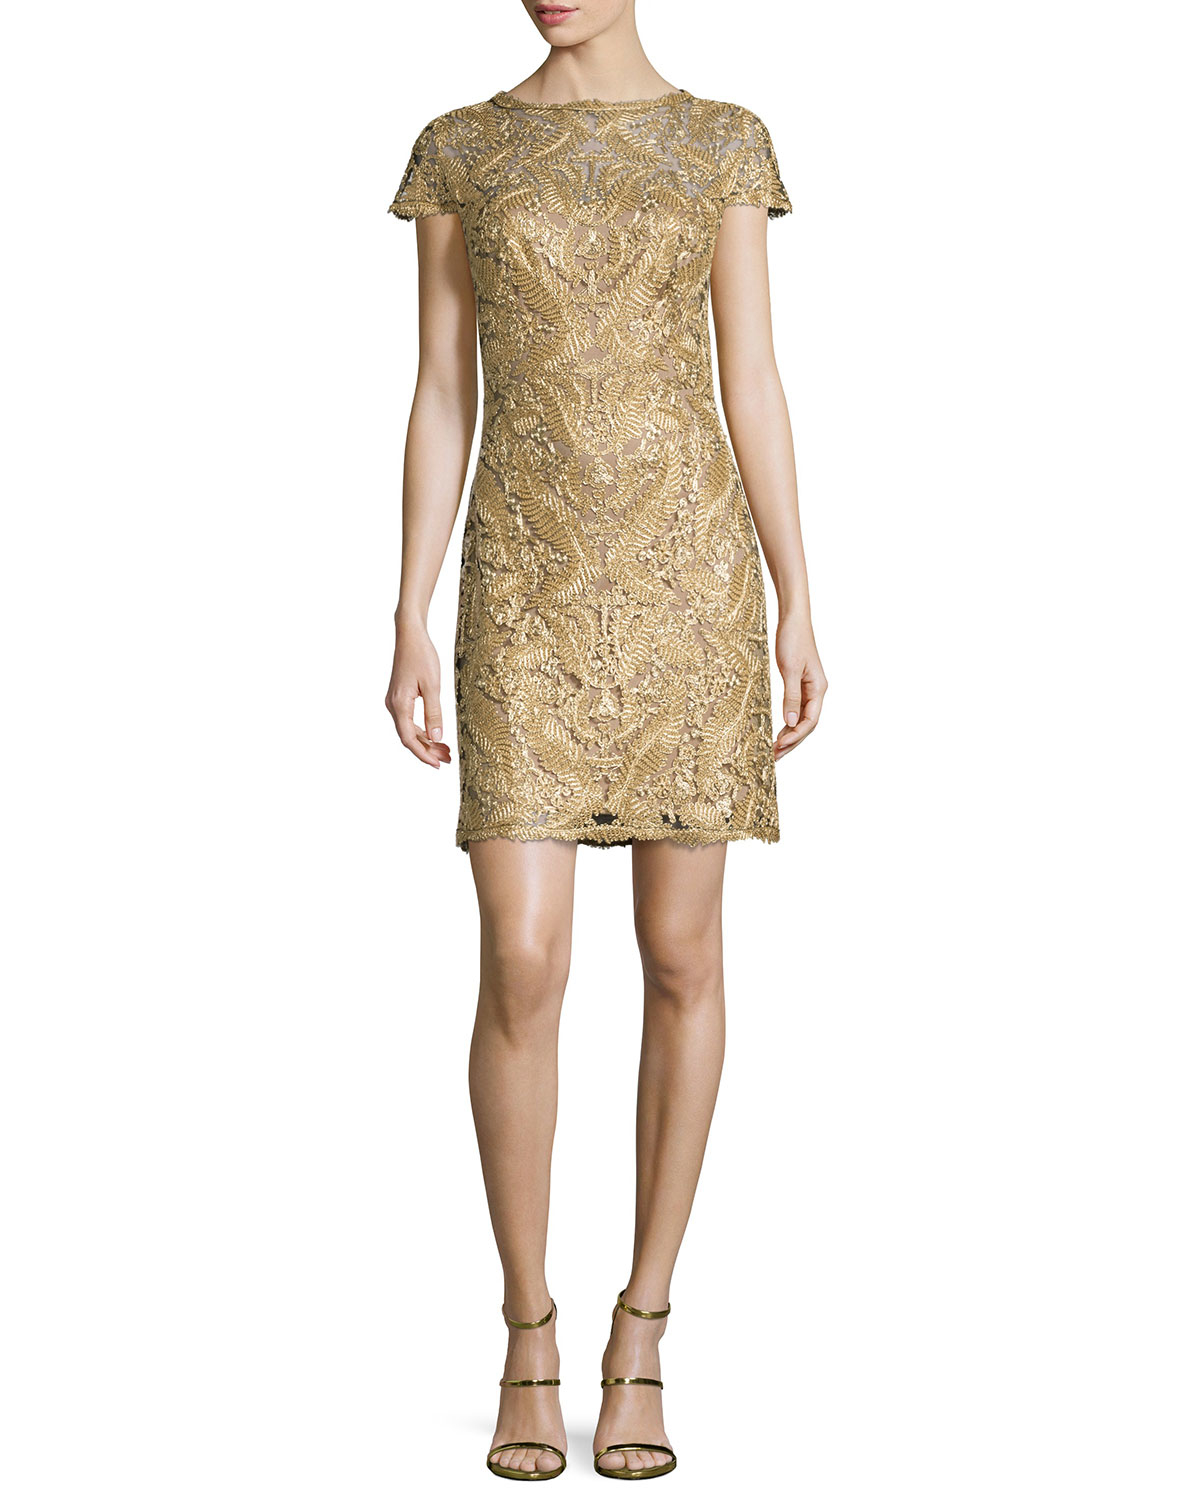 Tadashi shoji Filigree-Lace Shift Dress in Metallic